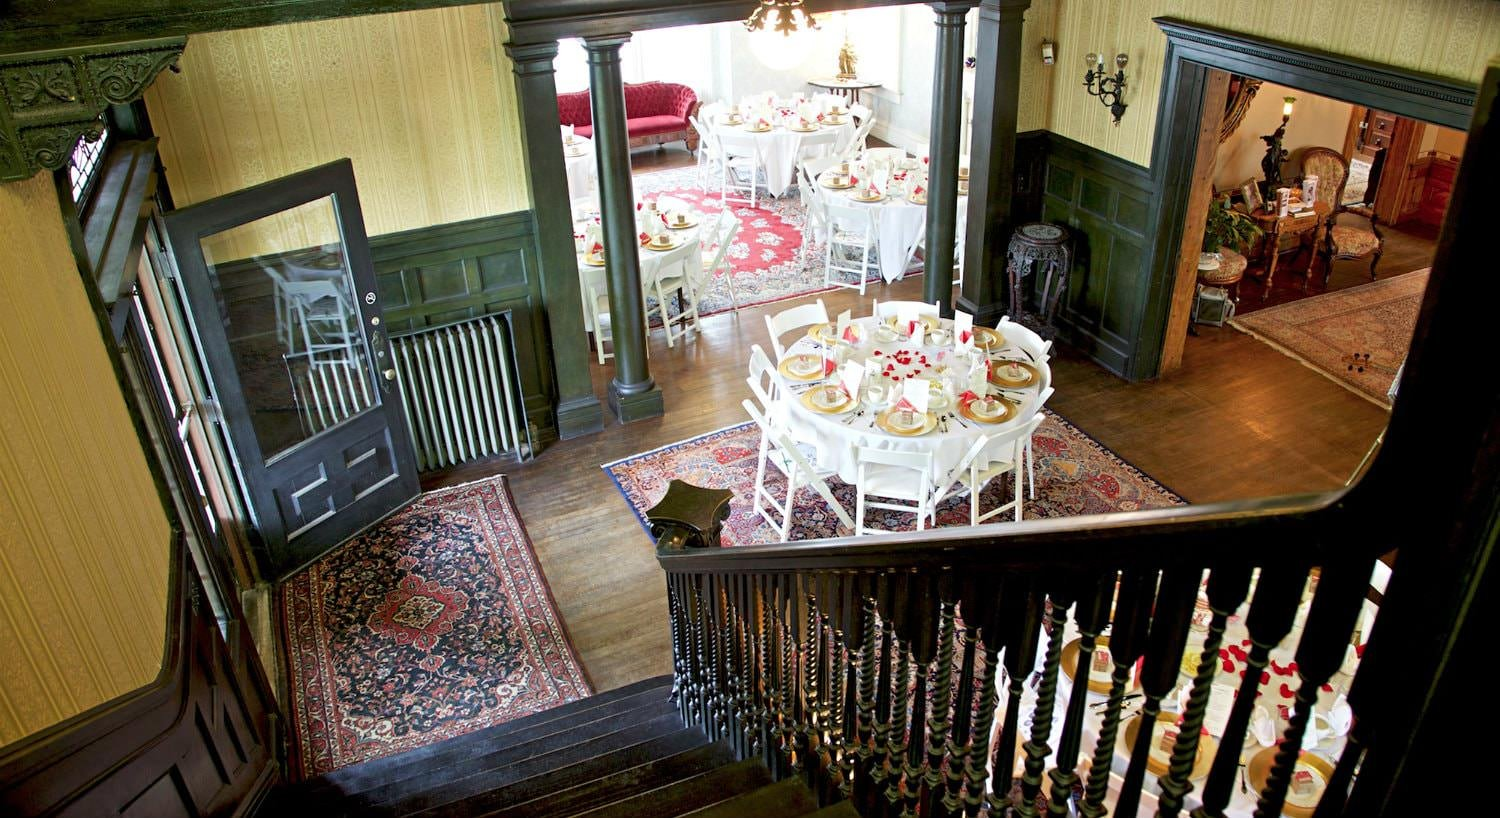 View from top of stairs looking at adjoining rooms with several white round table and chairs set for a meal